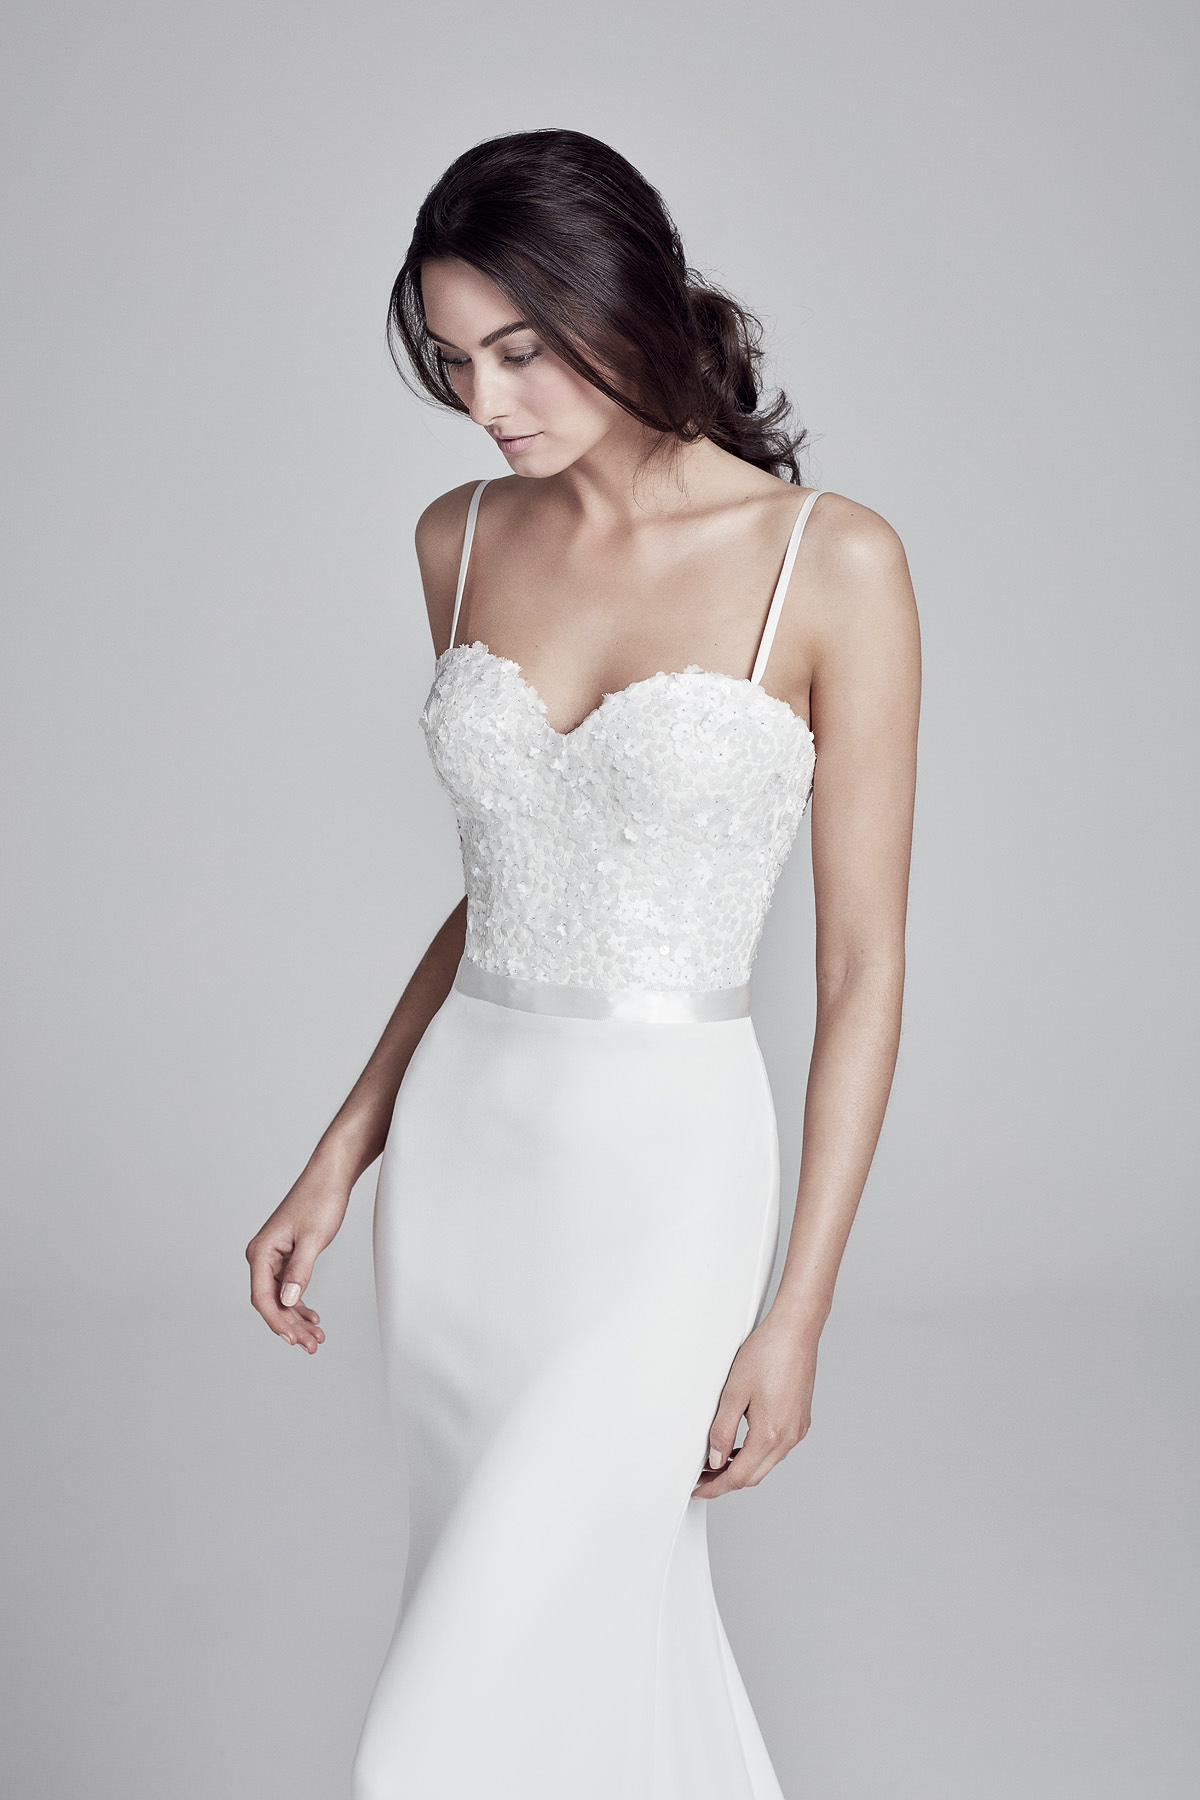 Hampshire Brides | Wedding Dress | White wedding gown